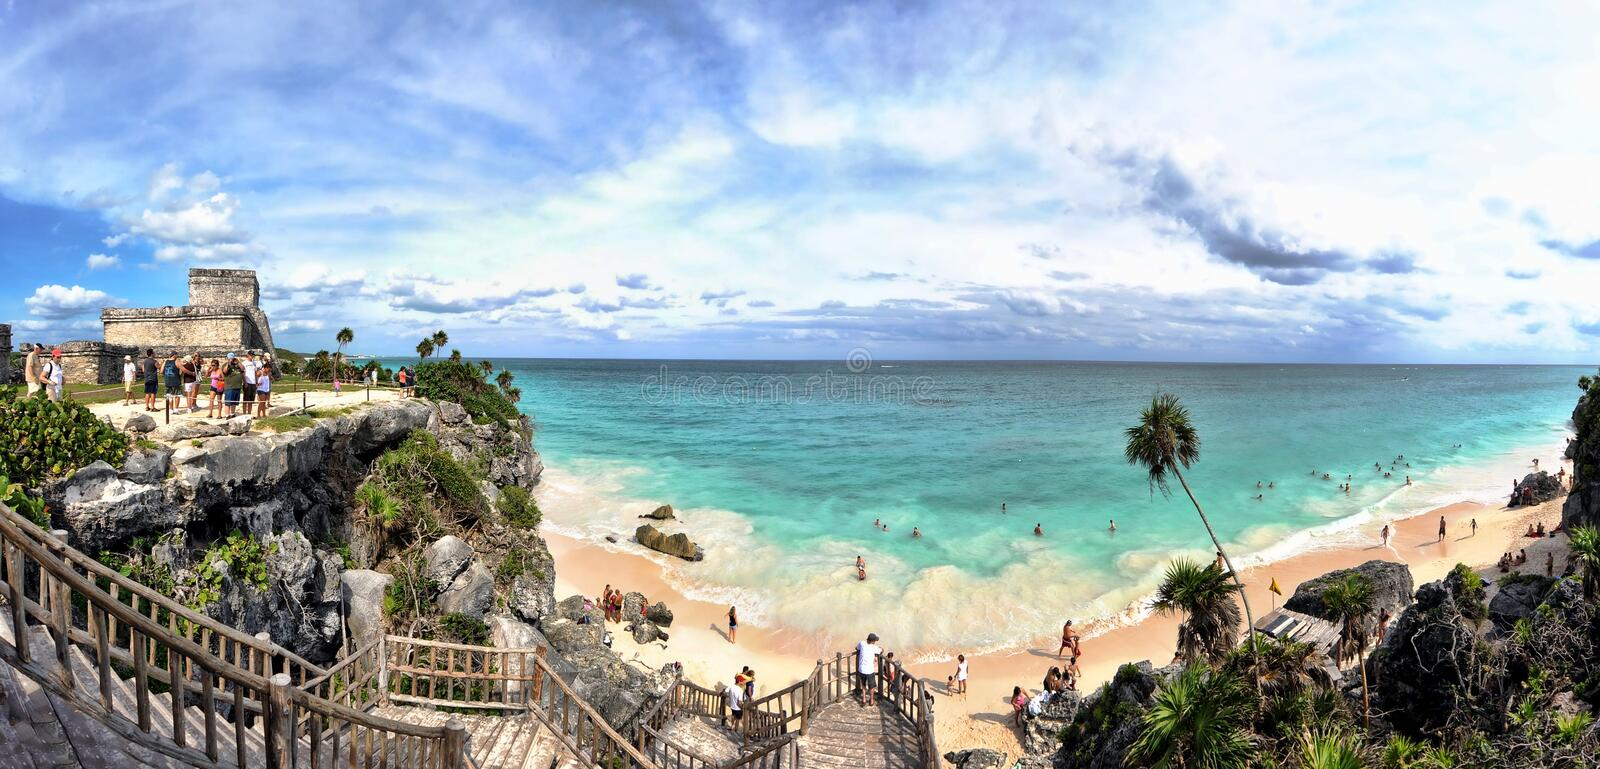 Tulum Beach Panorama, Mayan Riviera, Mexico. The beautiful beach at Tulum near in the Mayan Riviera, Mexico in a panoramic view